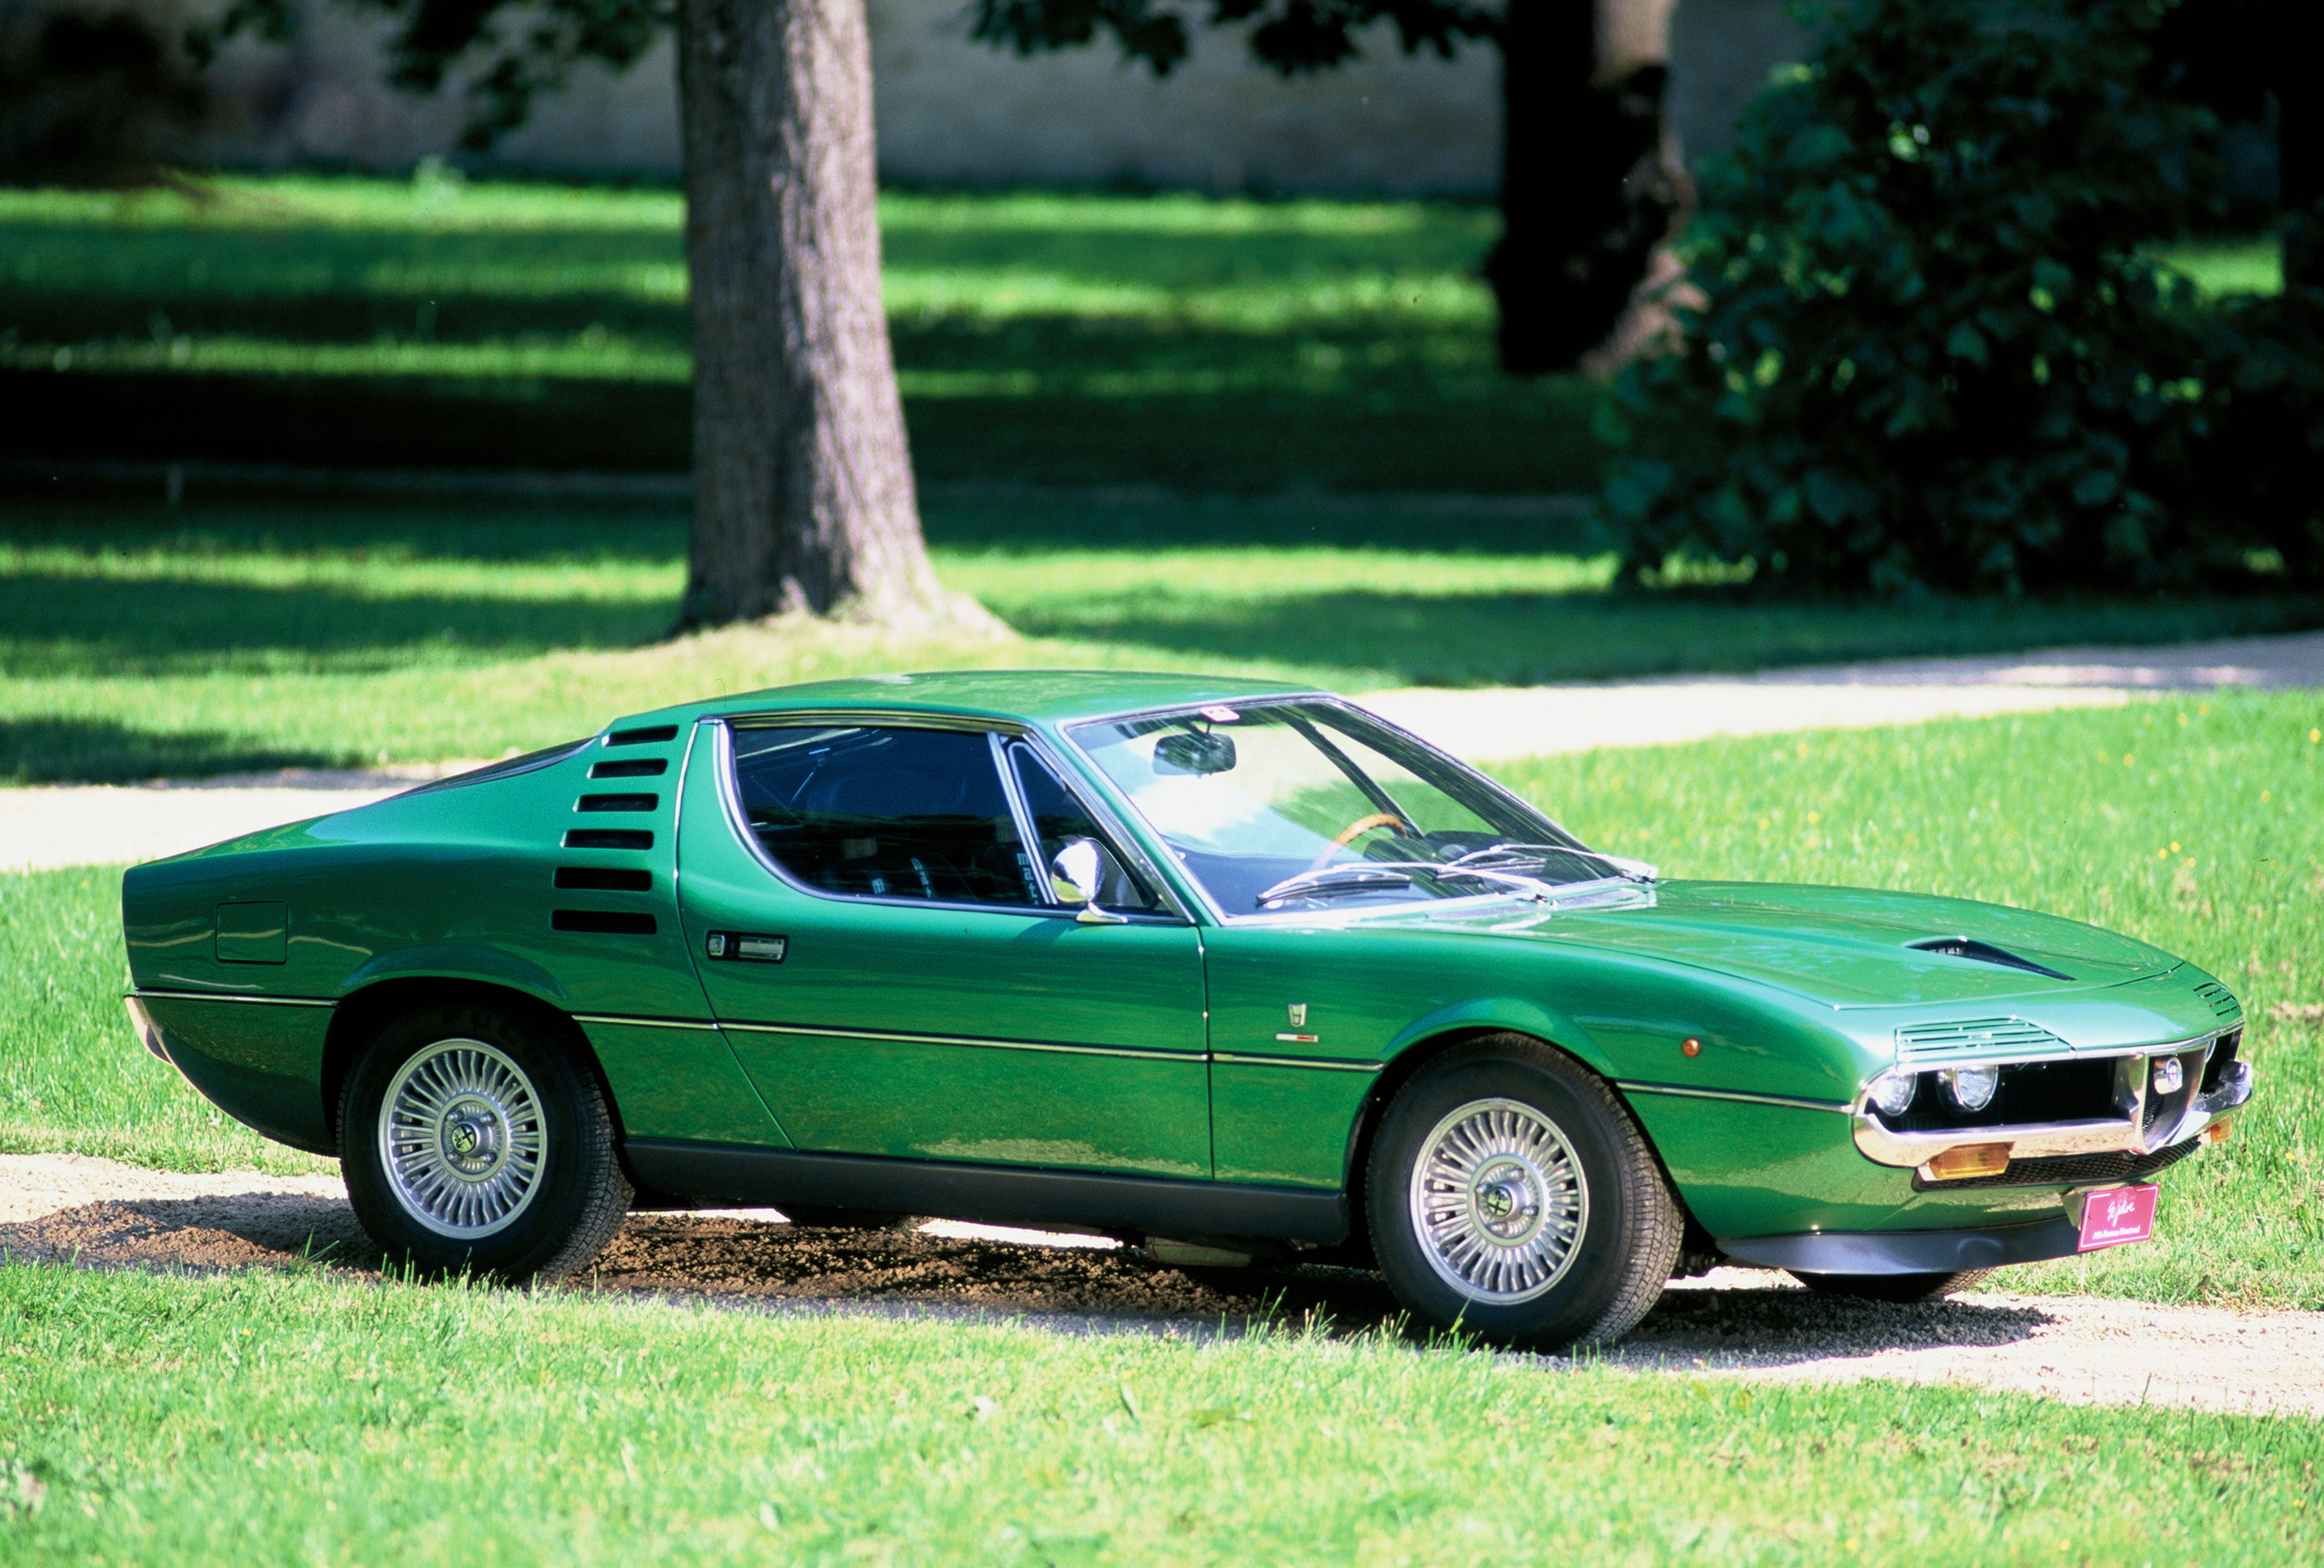 Alfa romeo bertone photo - 4